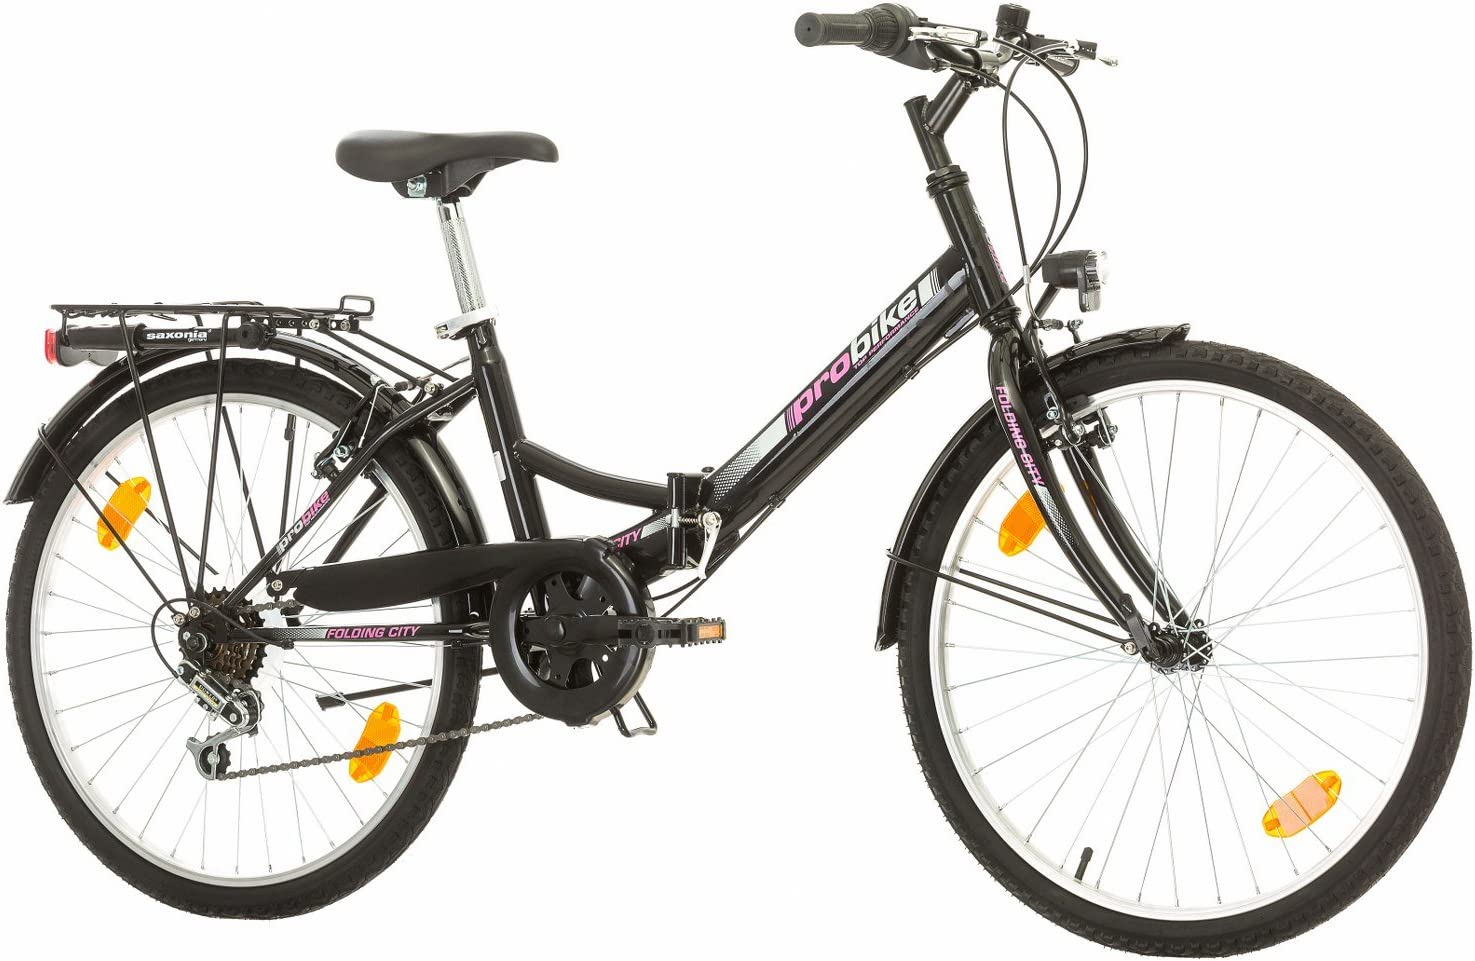 Multimarca, Folding City 24 Lady, 24 Pulgadas, 457 mm, Bicicleta ...